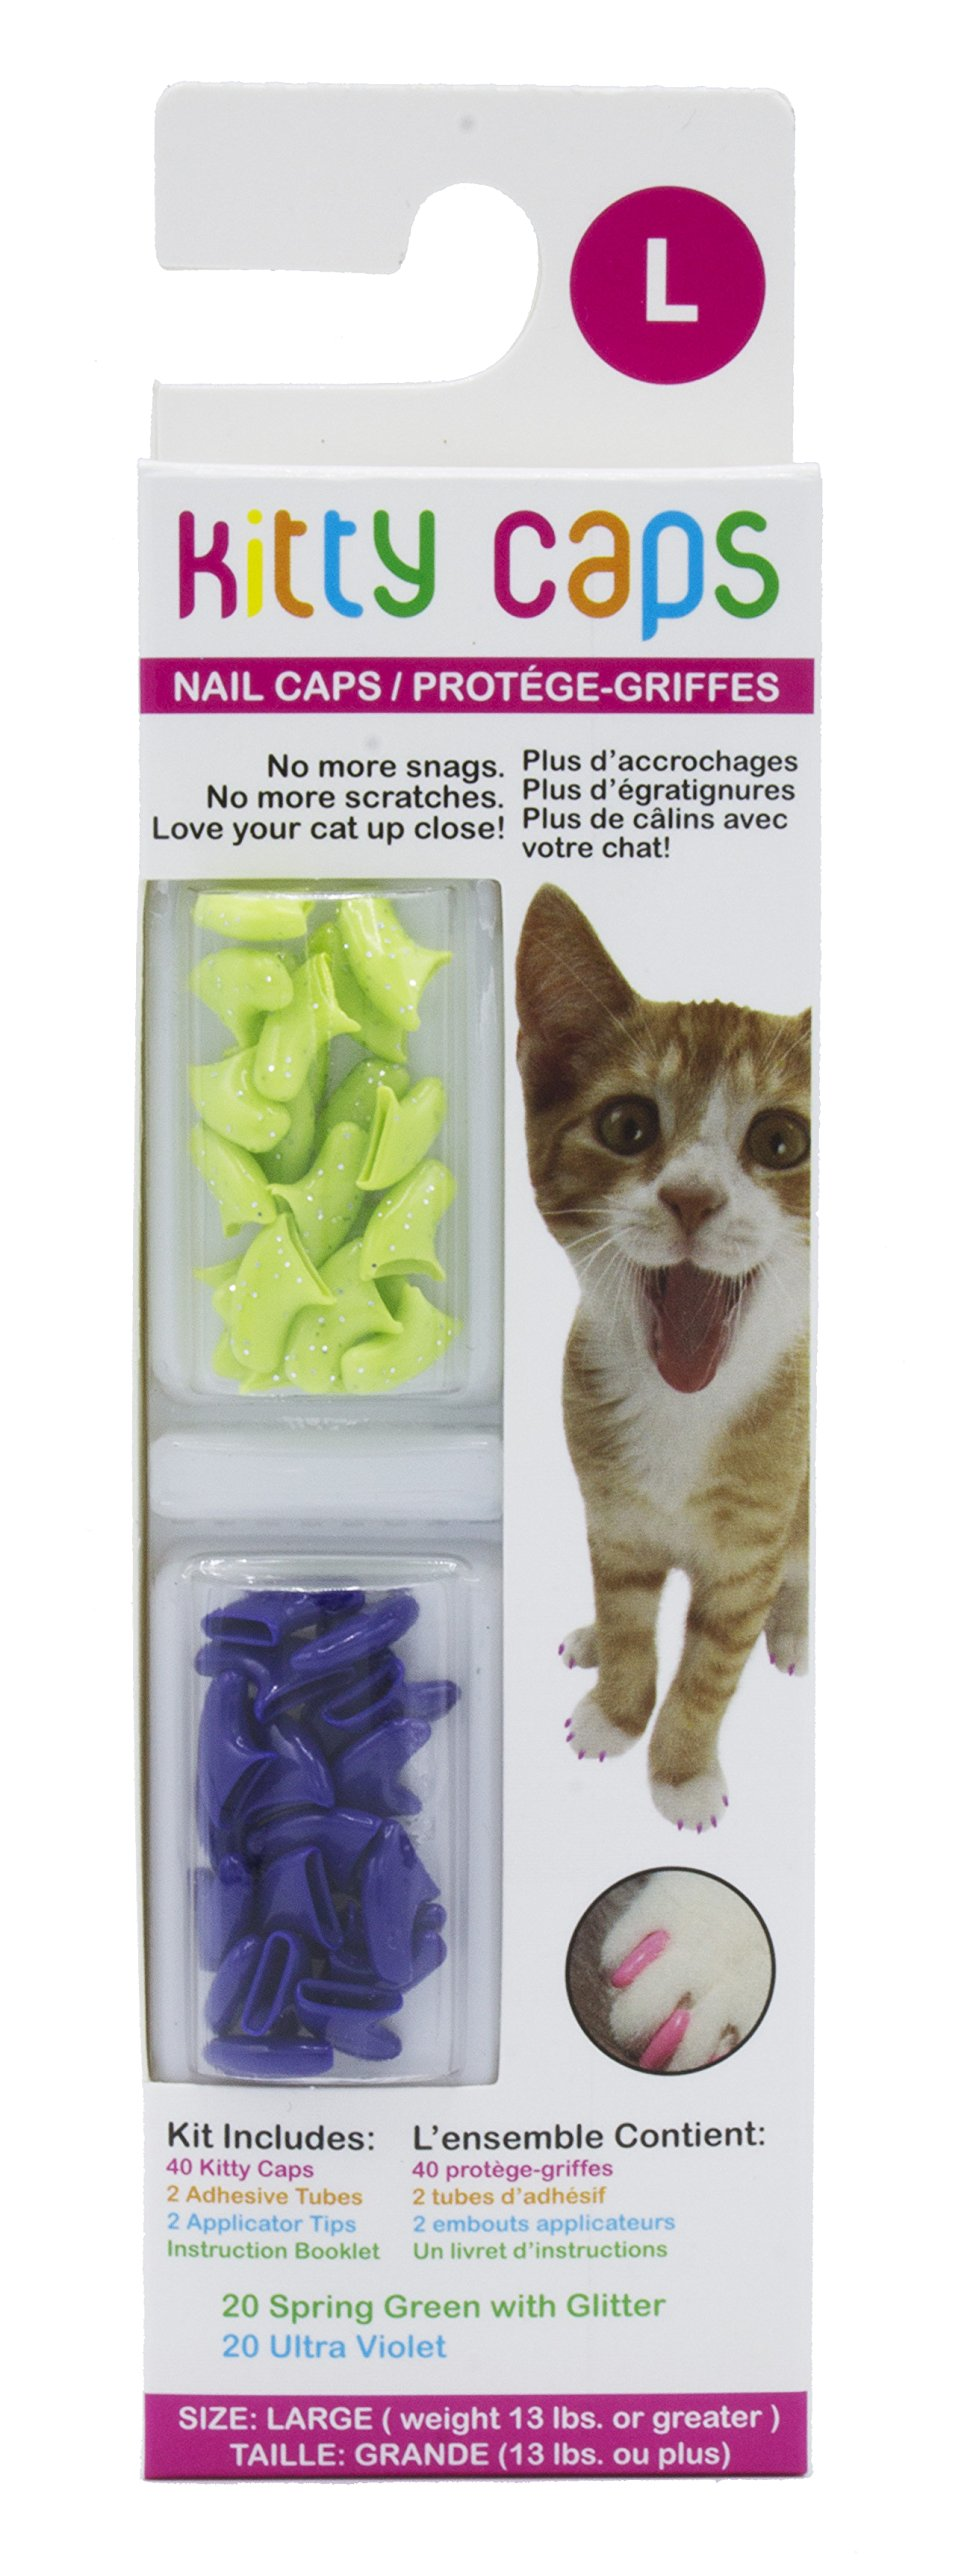 Kitty Caps Kitty Caps Nail Caps for Cats | Safe & Stylish Alternative to Declawing for Cats | Kitty Nail Caps Stop Snags and Scratches | Available in Multiple Sizes, Styles, and Colors